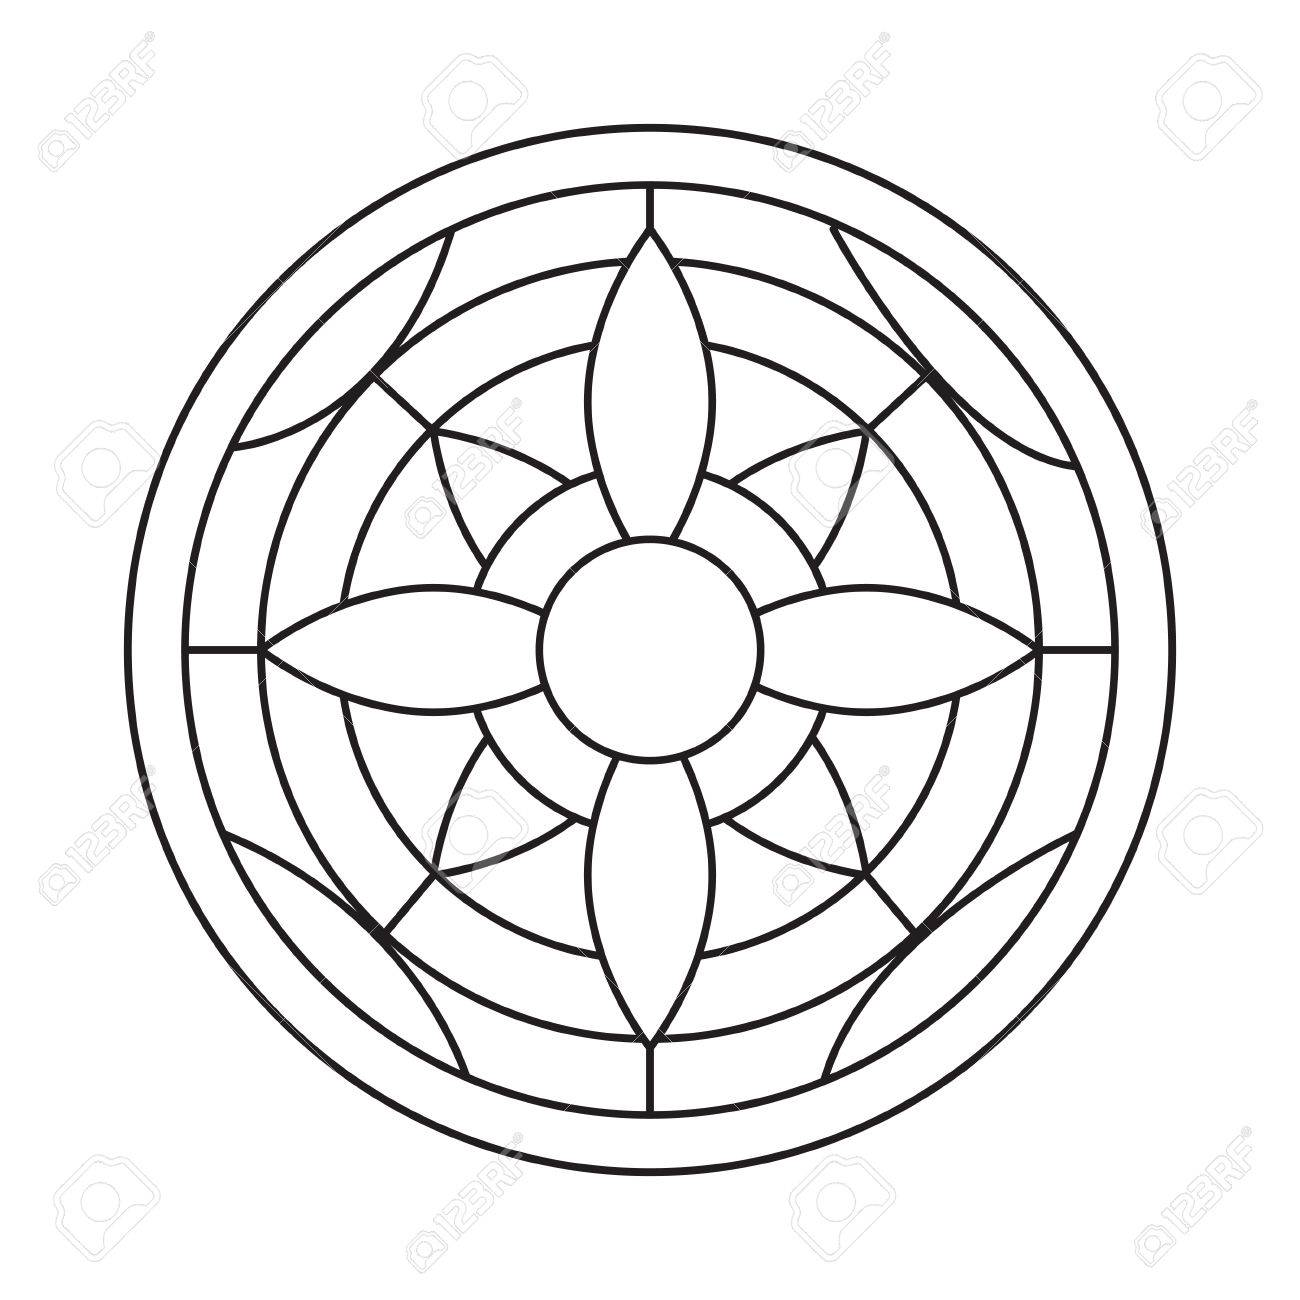 Mandala For Coloring Book And Adults. Made By Trace From Personal ...